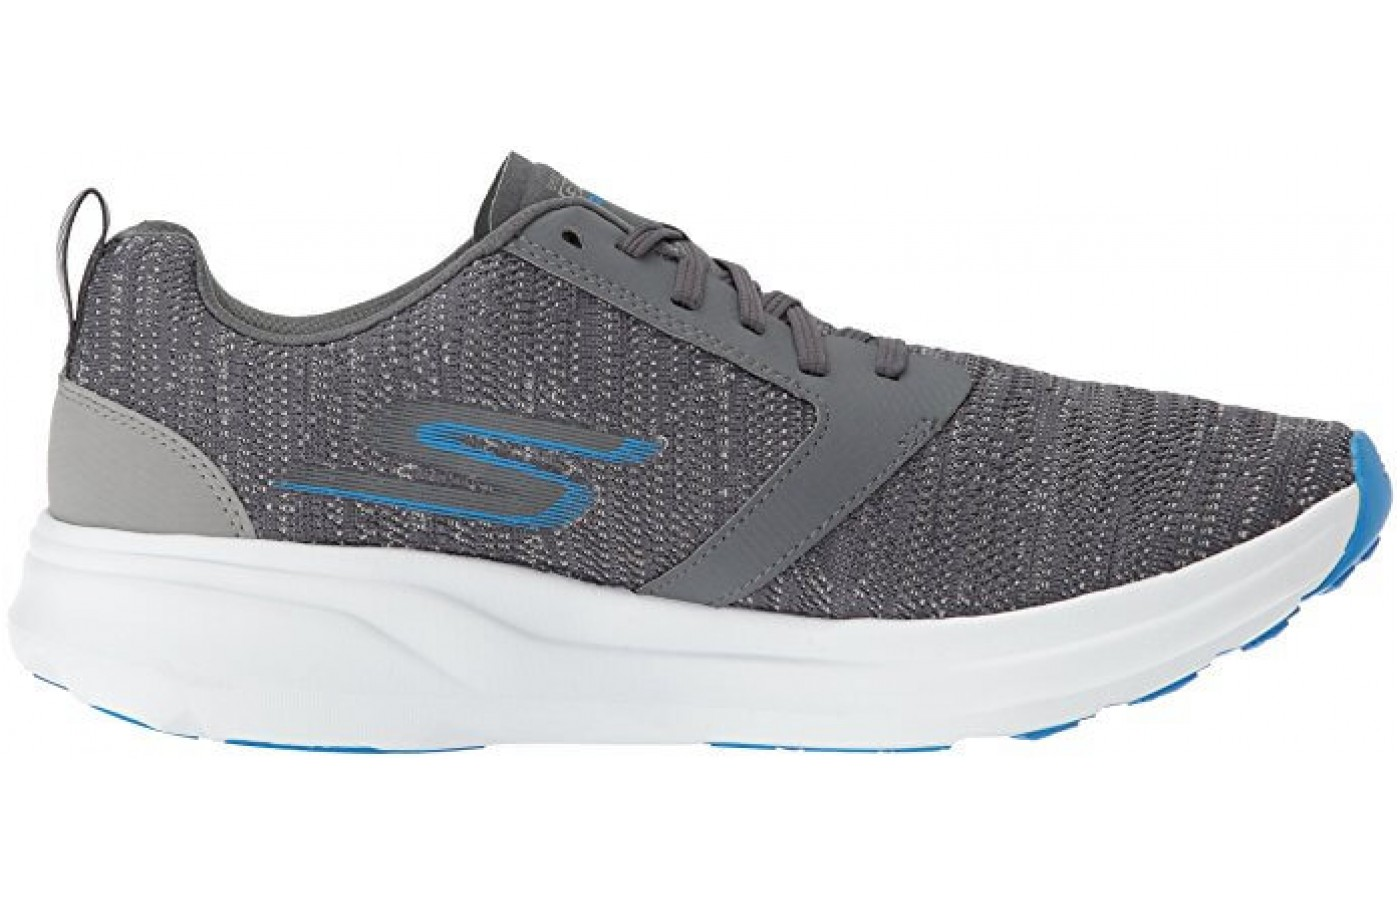 The Skechers GORun Ride 7 side view